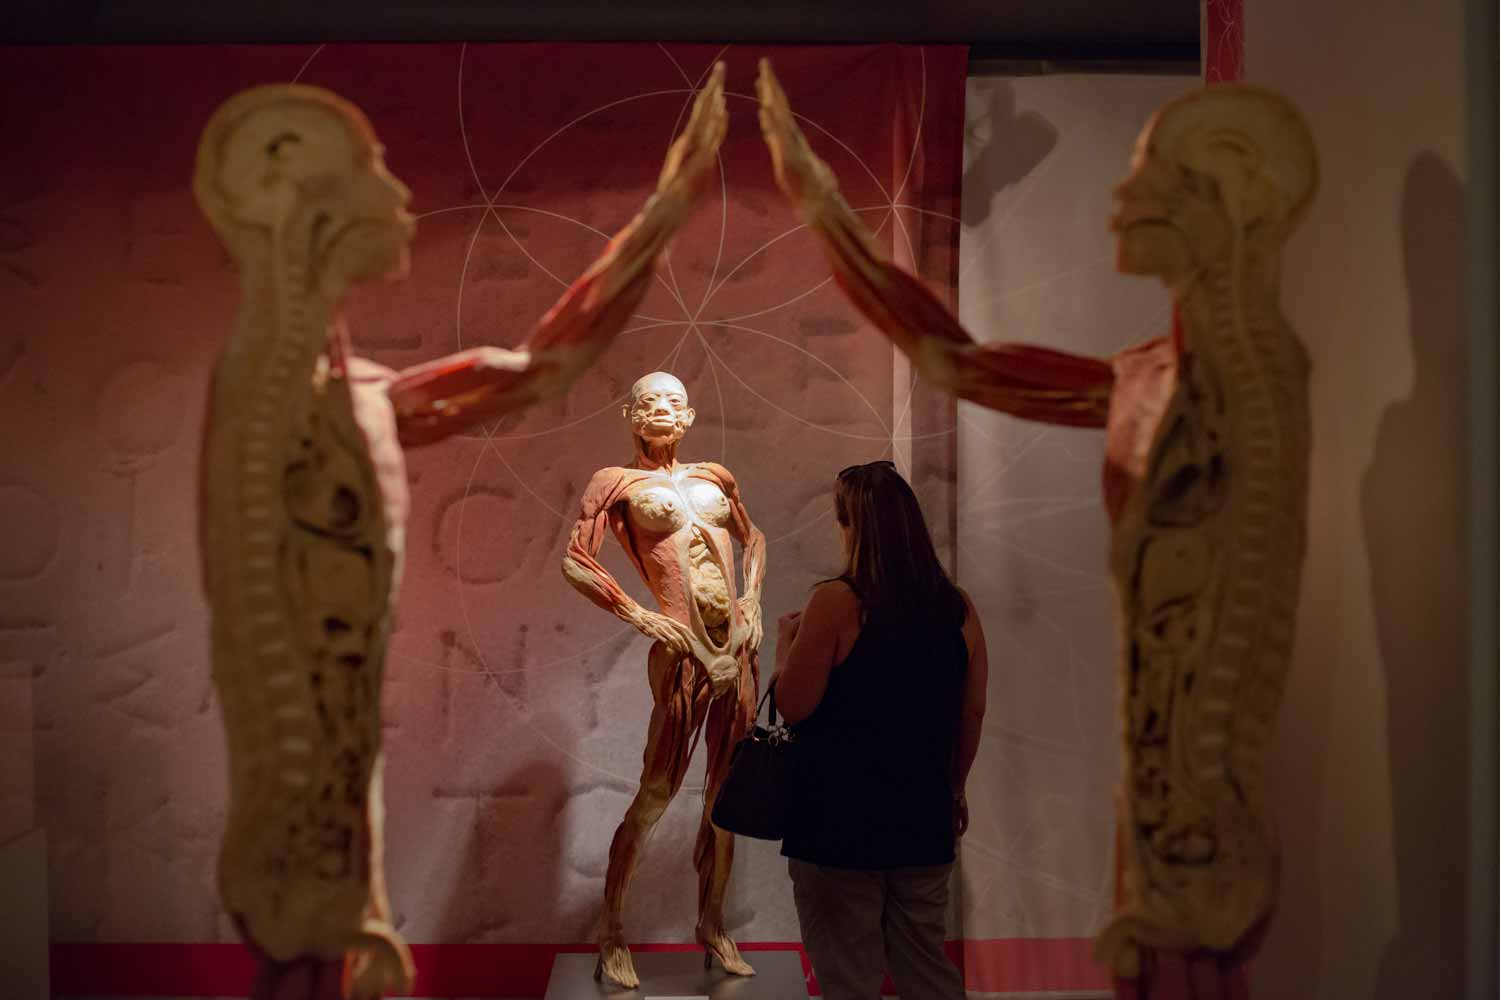 Real Bodies Exhibits at Bally's